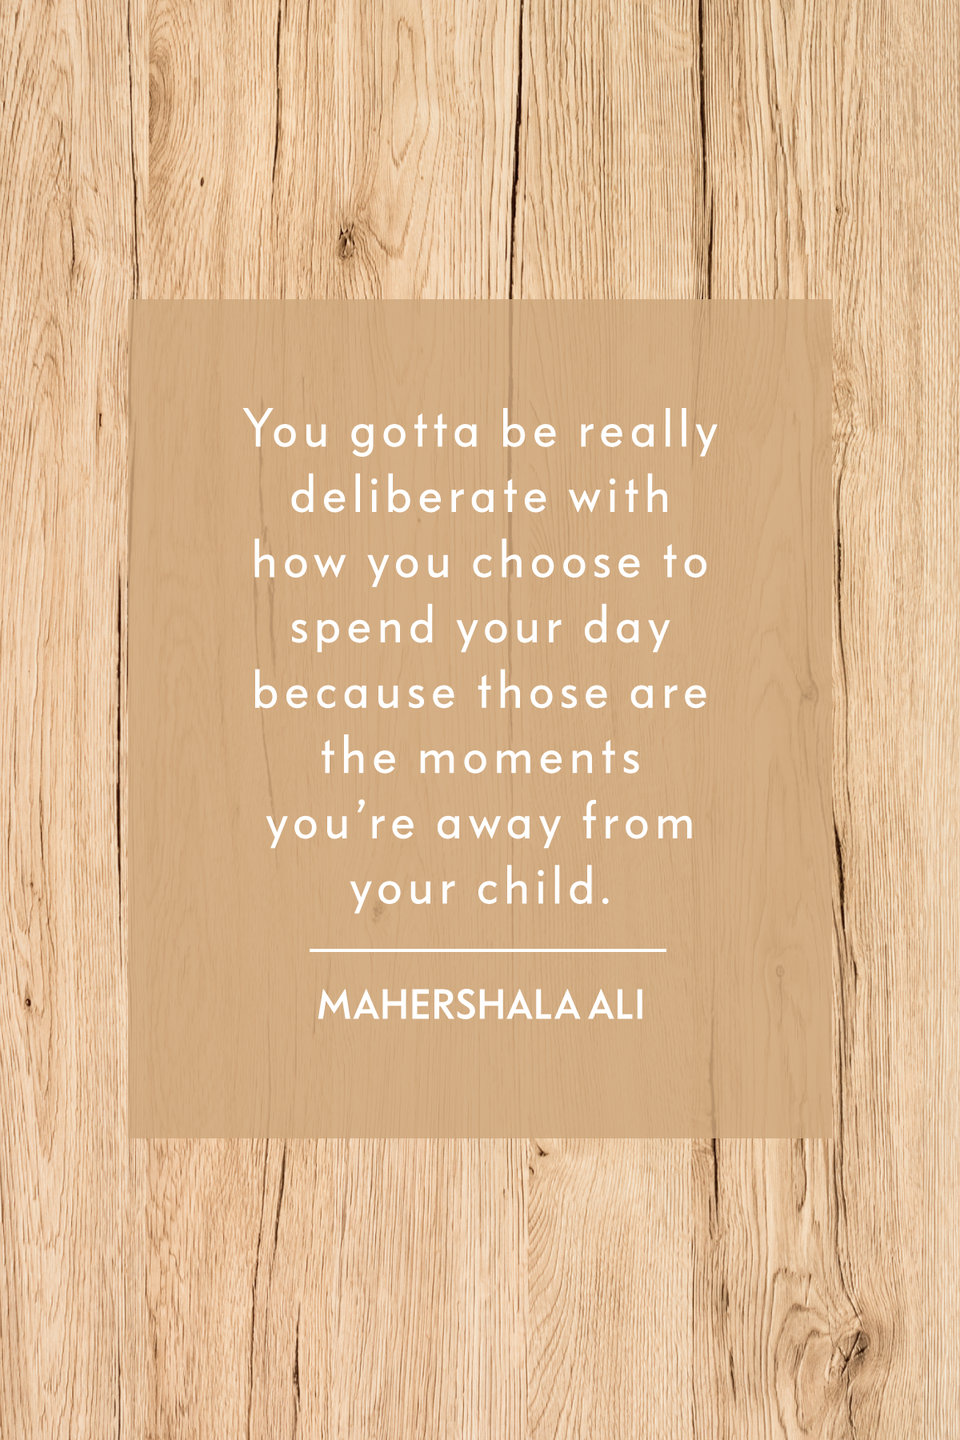 """<p>""""You gotta be really deliberate with how you choose to spend your day because those are the moments you're away from your child,"""" the Oscar-award winning actor told <em><a href=""""https://people.com/parents/mahershala-ali-on-fatherhood-different-crazy/"""" rel=""""nofollow noopener"""" target=""""_blank"""" data-ylk=""""slk:People"""" class=""""link rapid-noclick-resp"""">People</a></em> in 2017.</p>"""